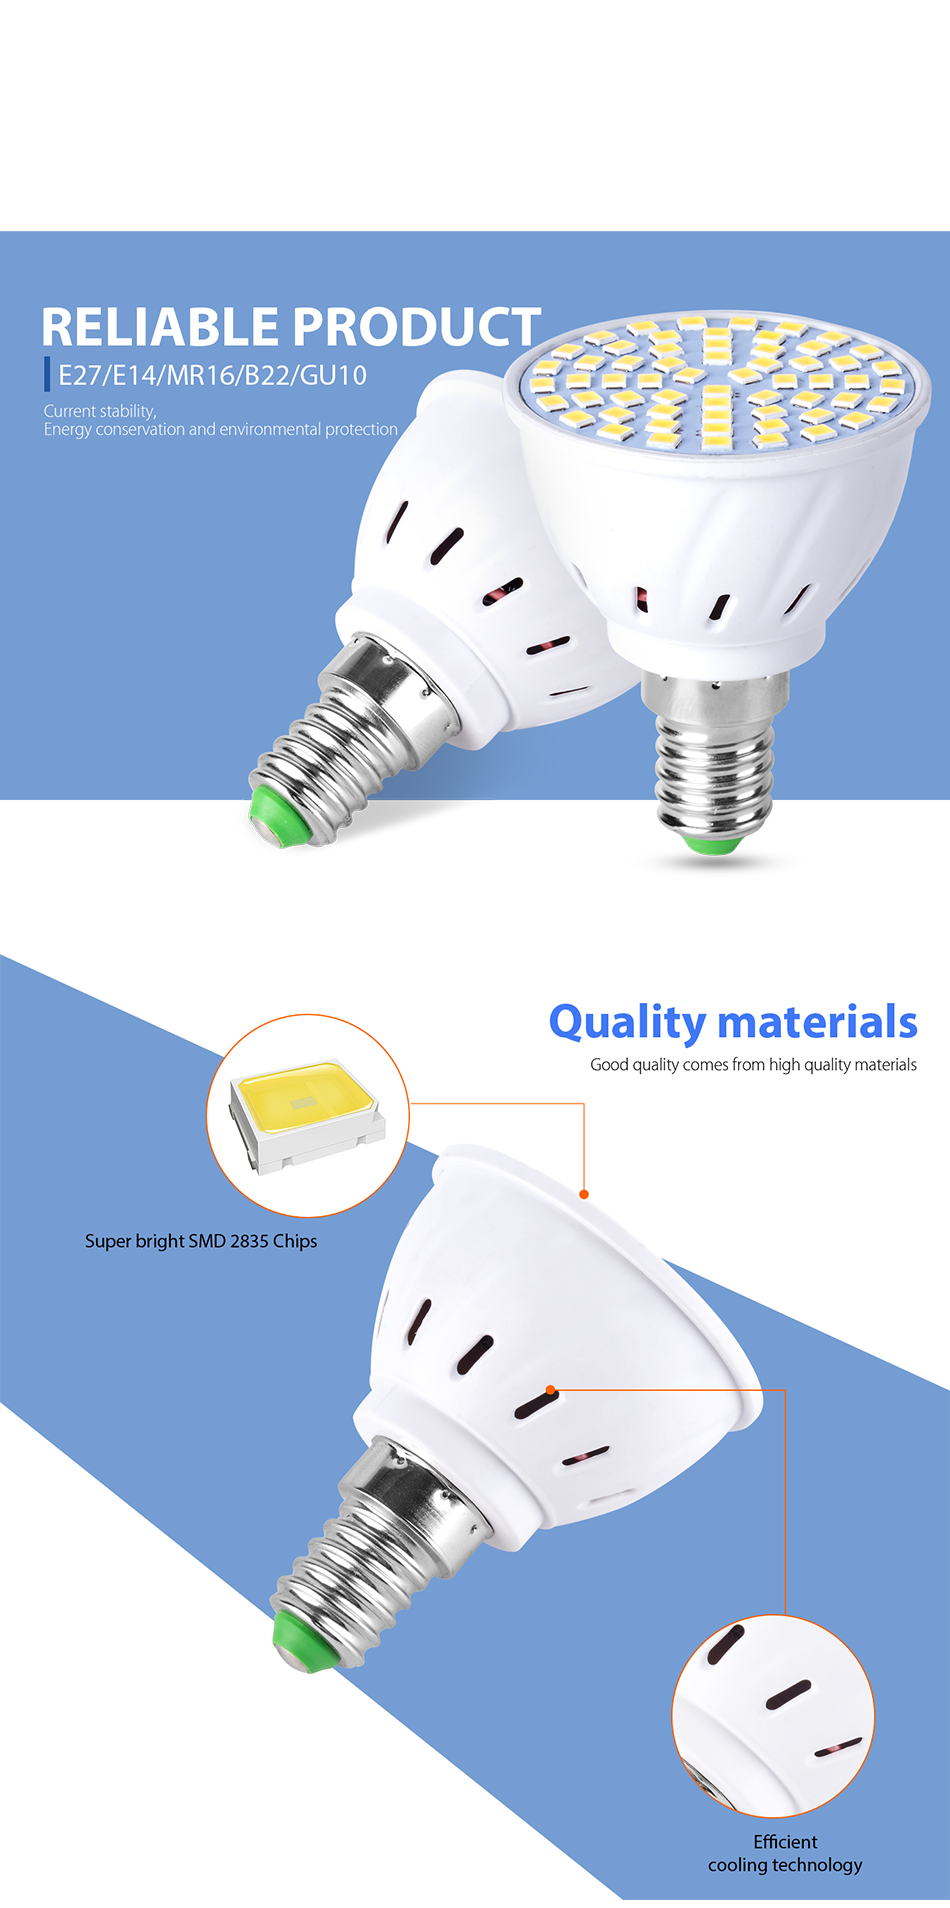 Led Bulbs & Tubes Gu10 Led Spot Light Bulb E27 220v Led Corn Lamp E14 Smd 2835 48 60 80leds Gu5.3 Bombillas Led B22 Focus 230v Ampoule Led Maison For Sale Light Bulbs